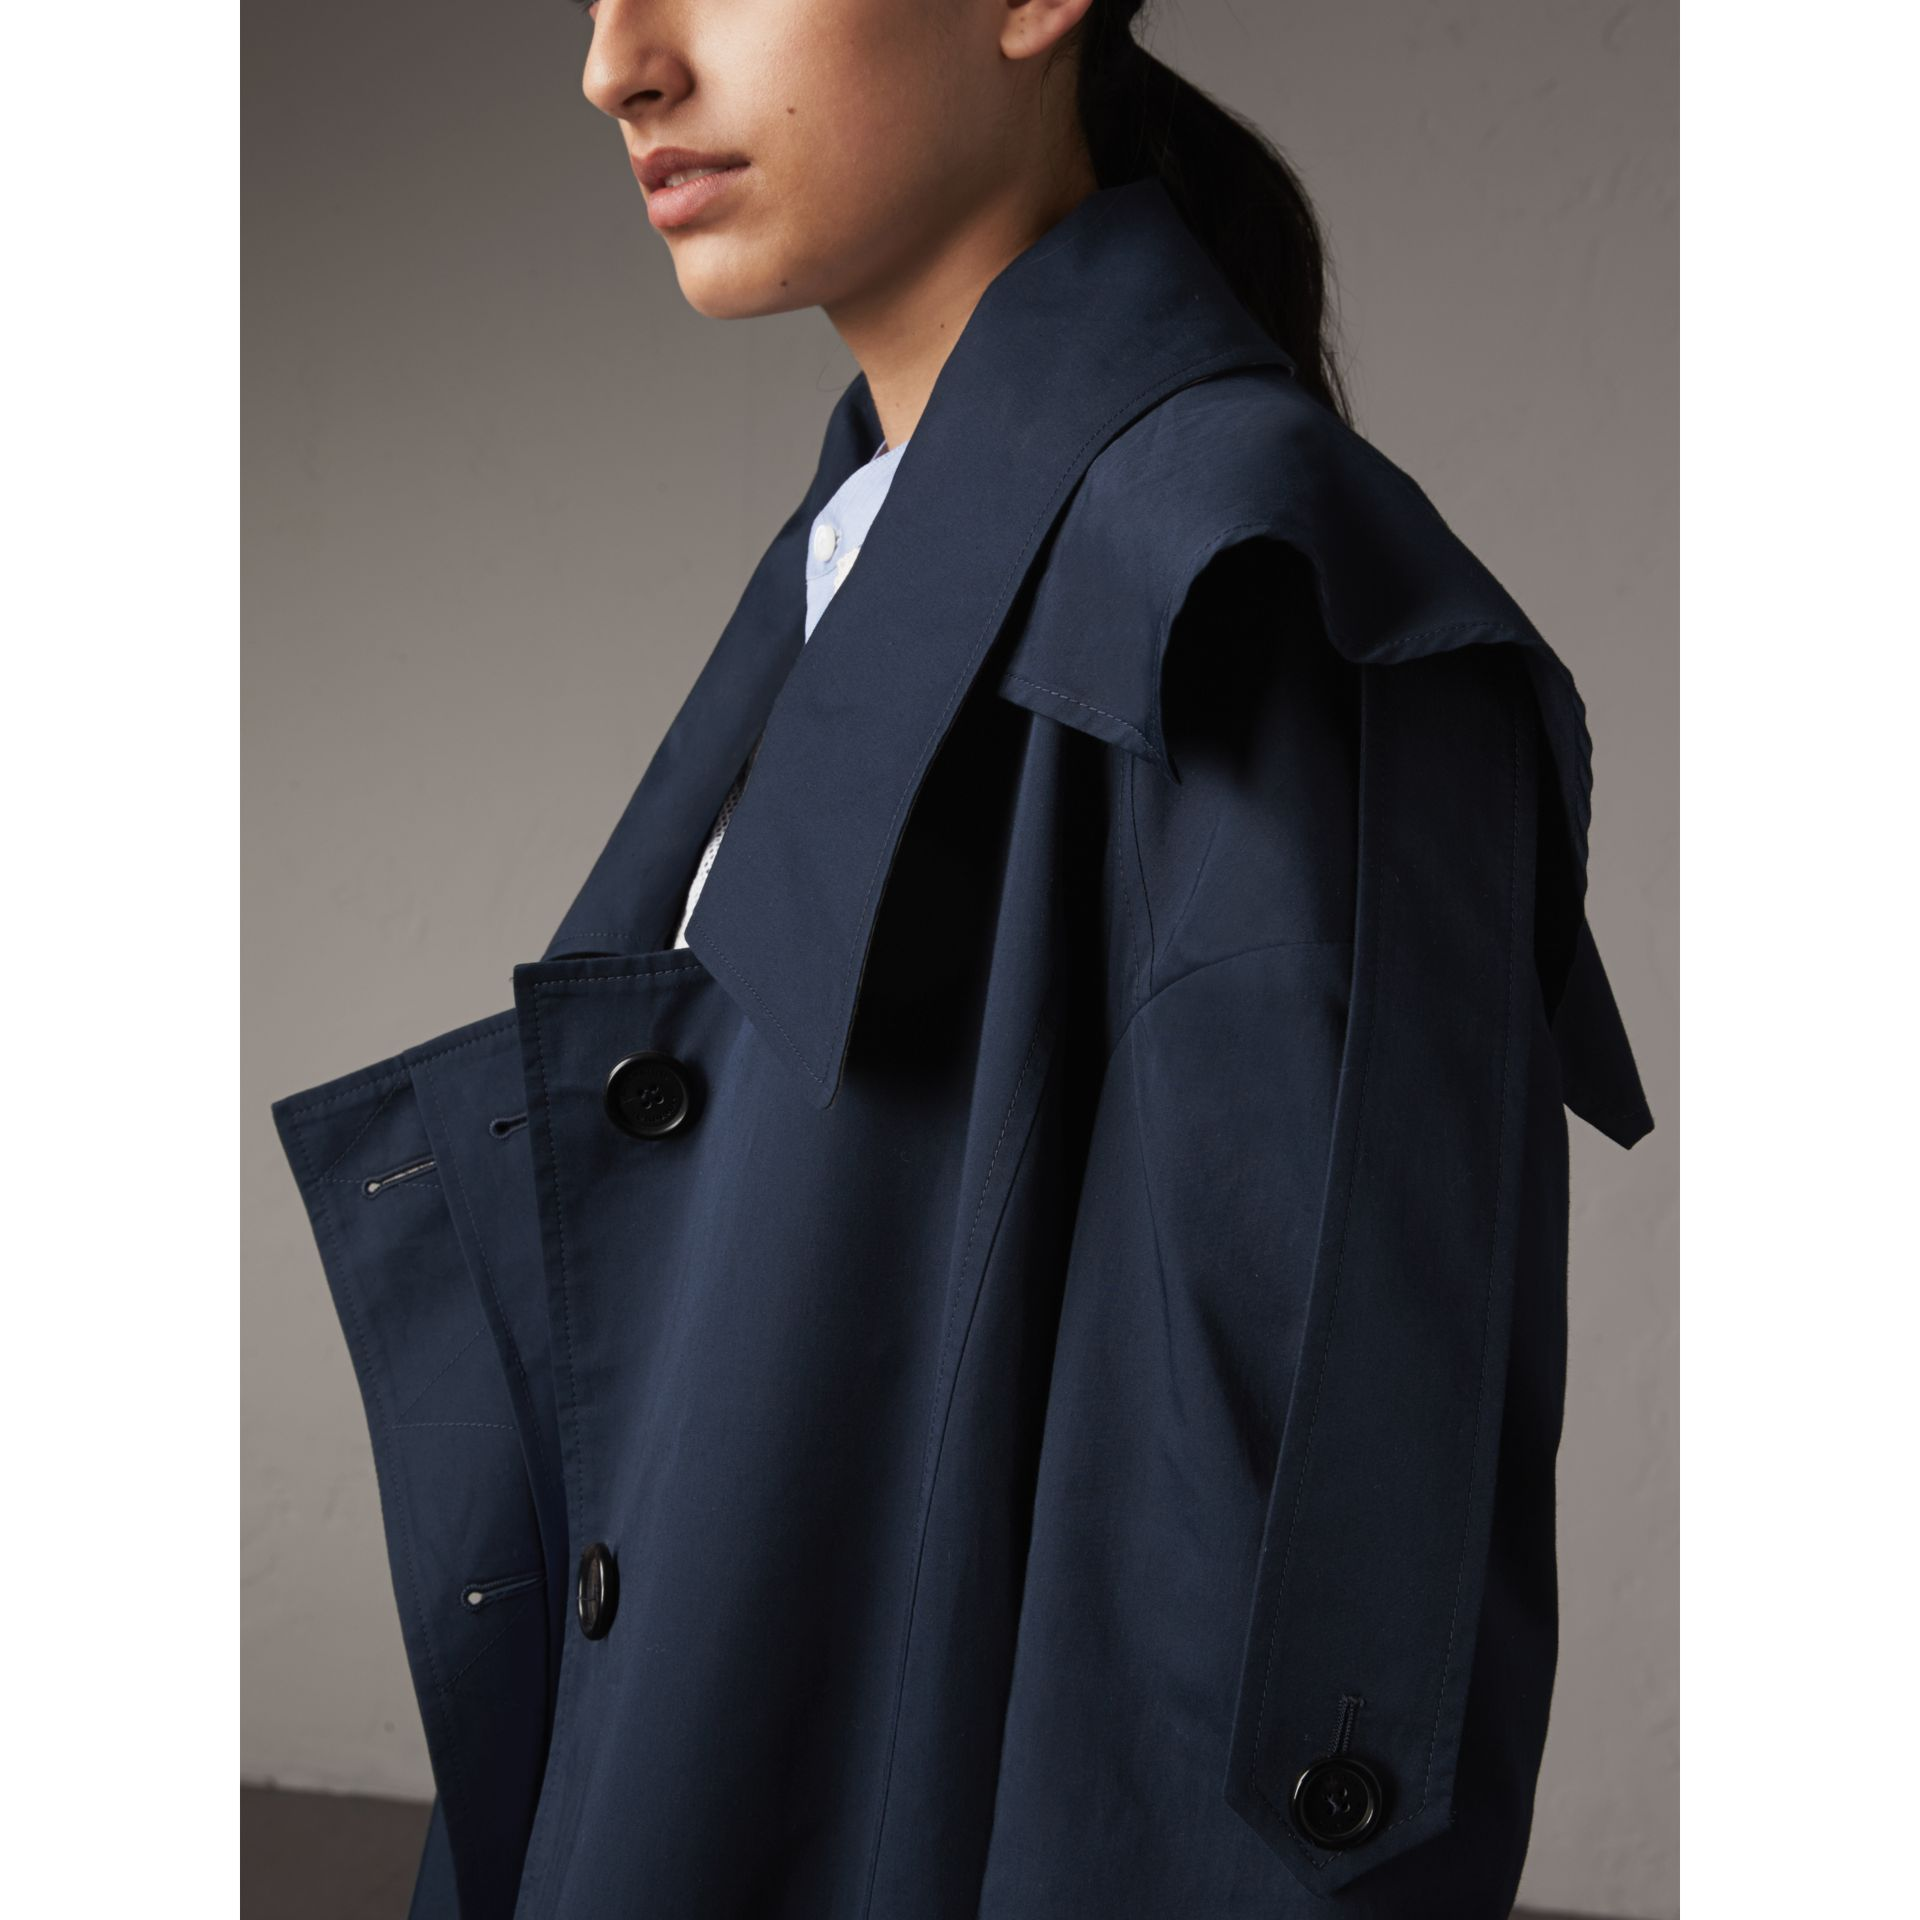 Cotton Asymmetric Trench Coat in Navy - Women | Burberry Hong Kong - gallery image 2